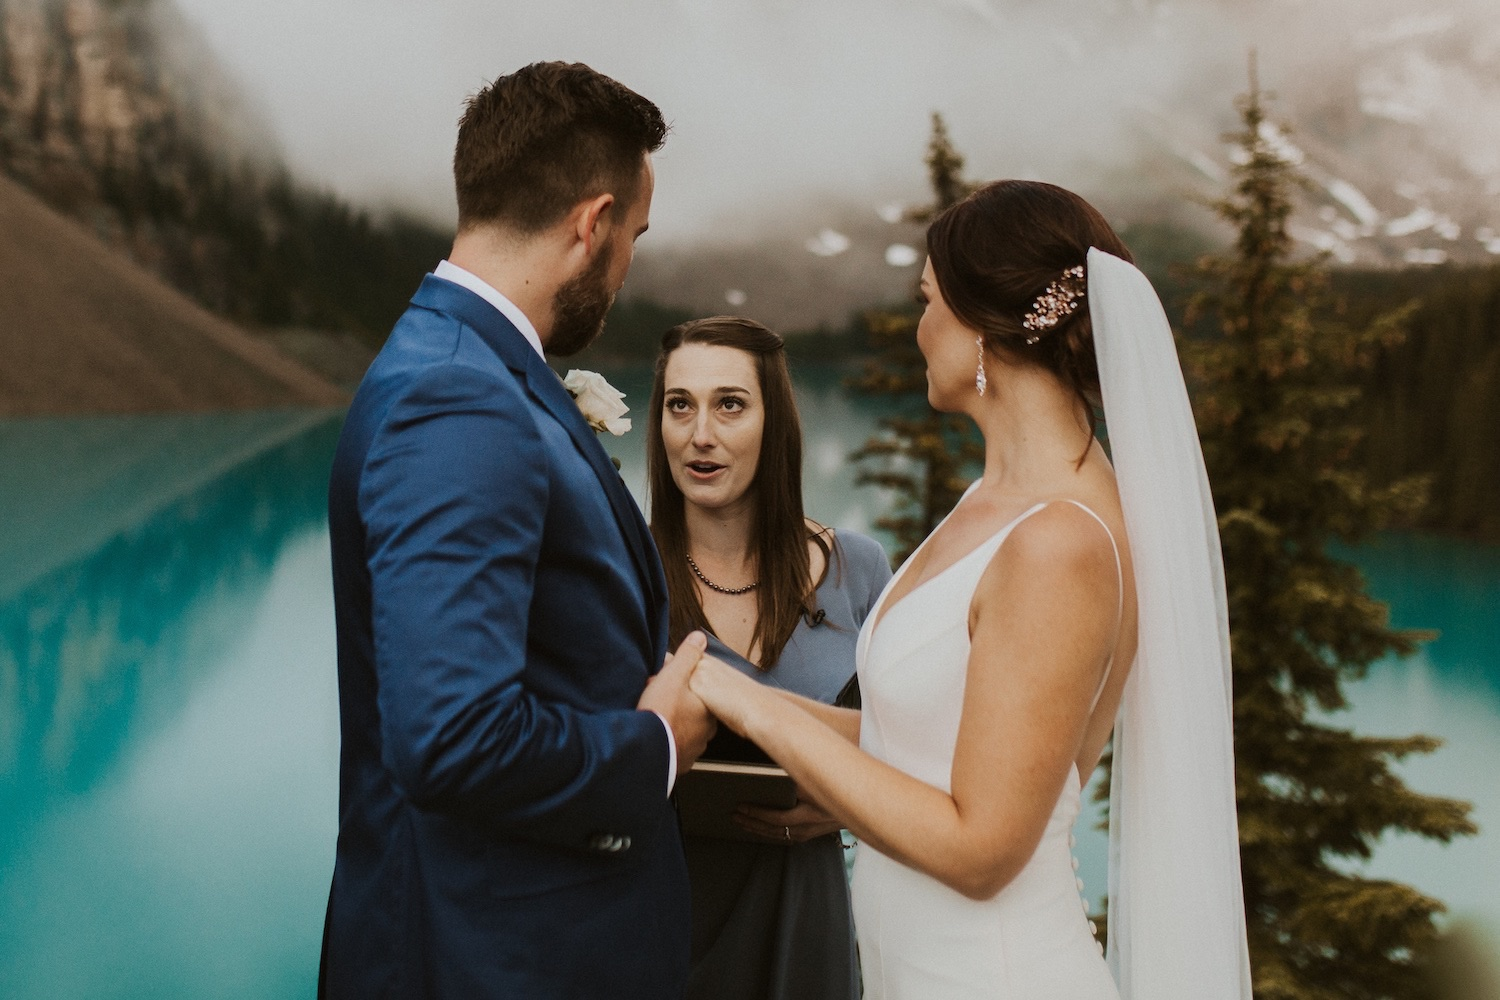 A Sunrise Elopement at Moraine Lake in Banff National Park, Banff National Park Sunrise Elopement, Elopement at Banff National Park, Banff National Park Wedding, How to get married in Banff National Park, Banff National Park Elopement, Moraine Lake Elopement, banff national park wedding photographer, Moraine lake wedding photographer, Moraine Lake wedding photos, Wedding at Moraine Lake in Banff National Park